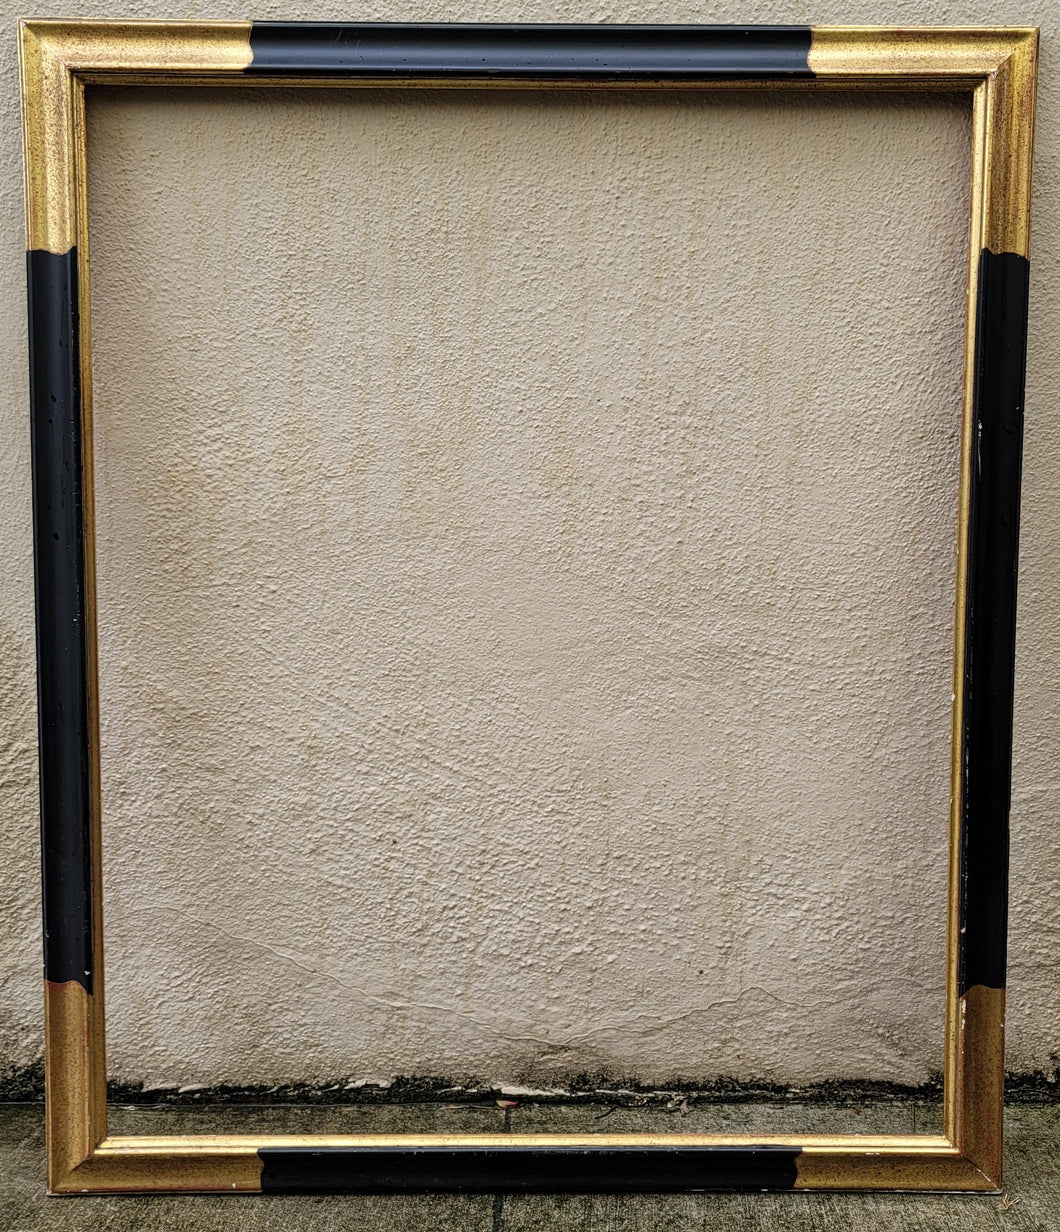 Vintage Black and Gold Picture Frame